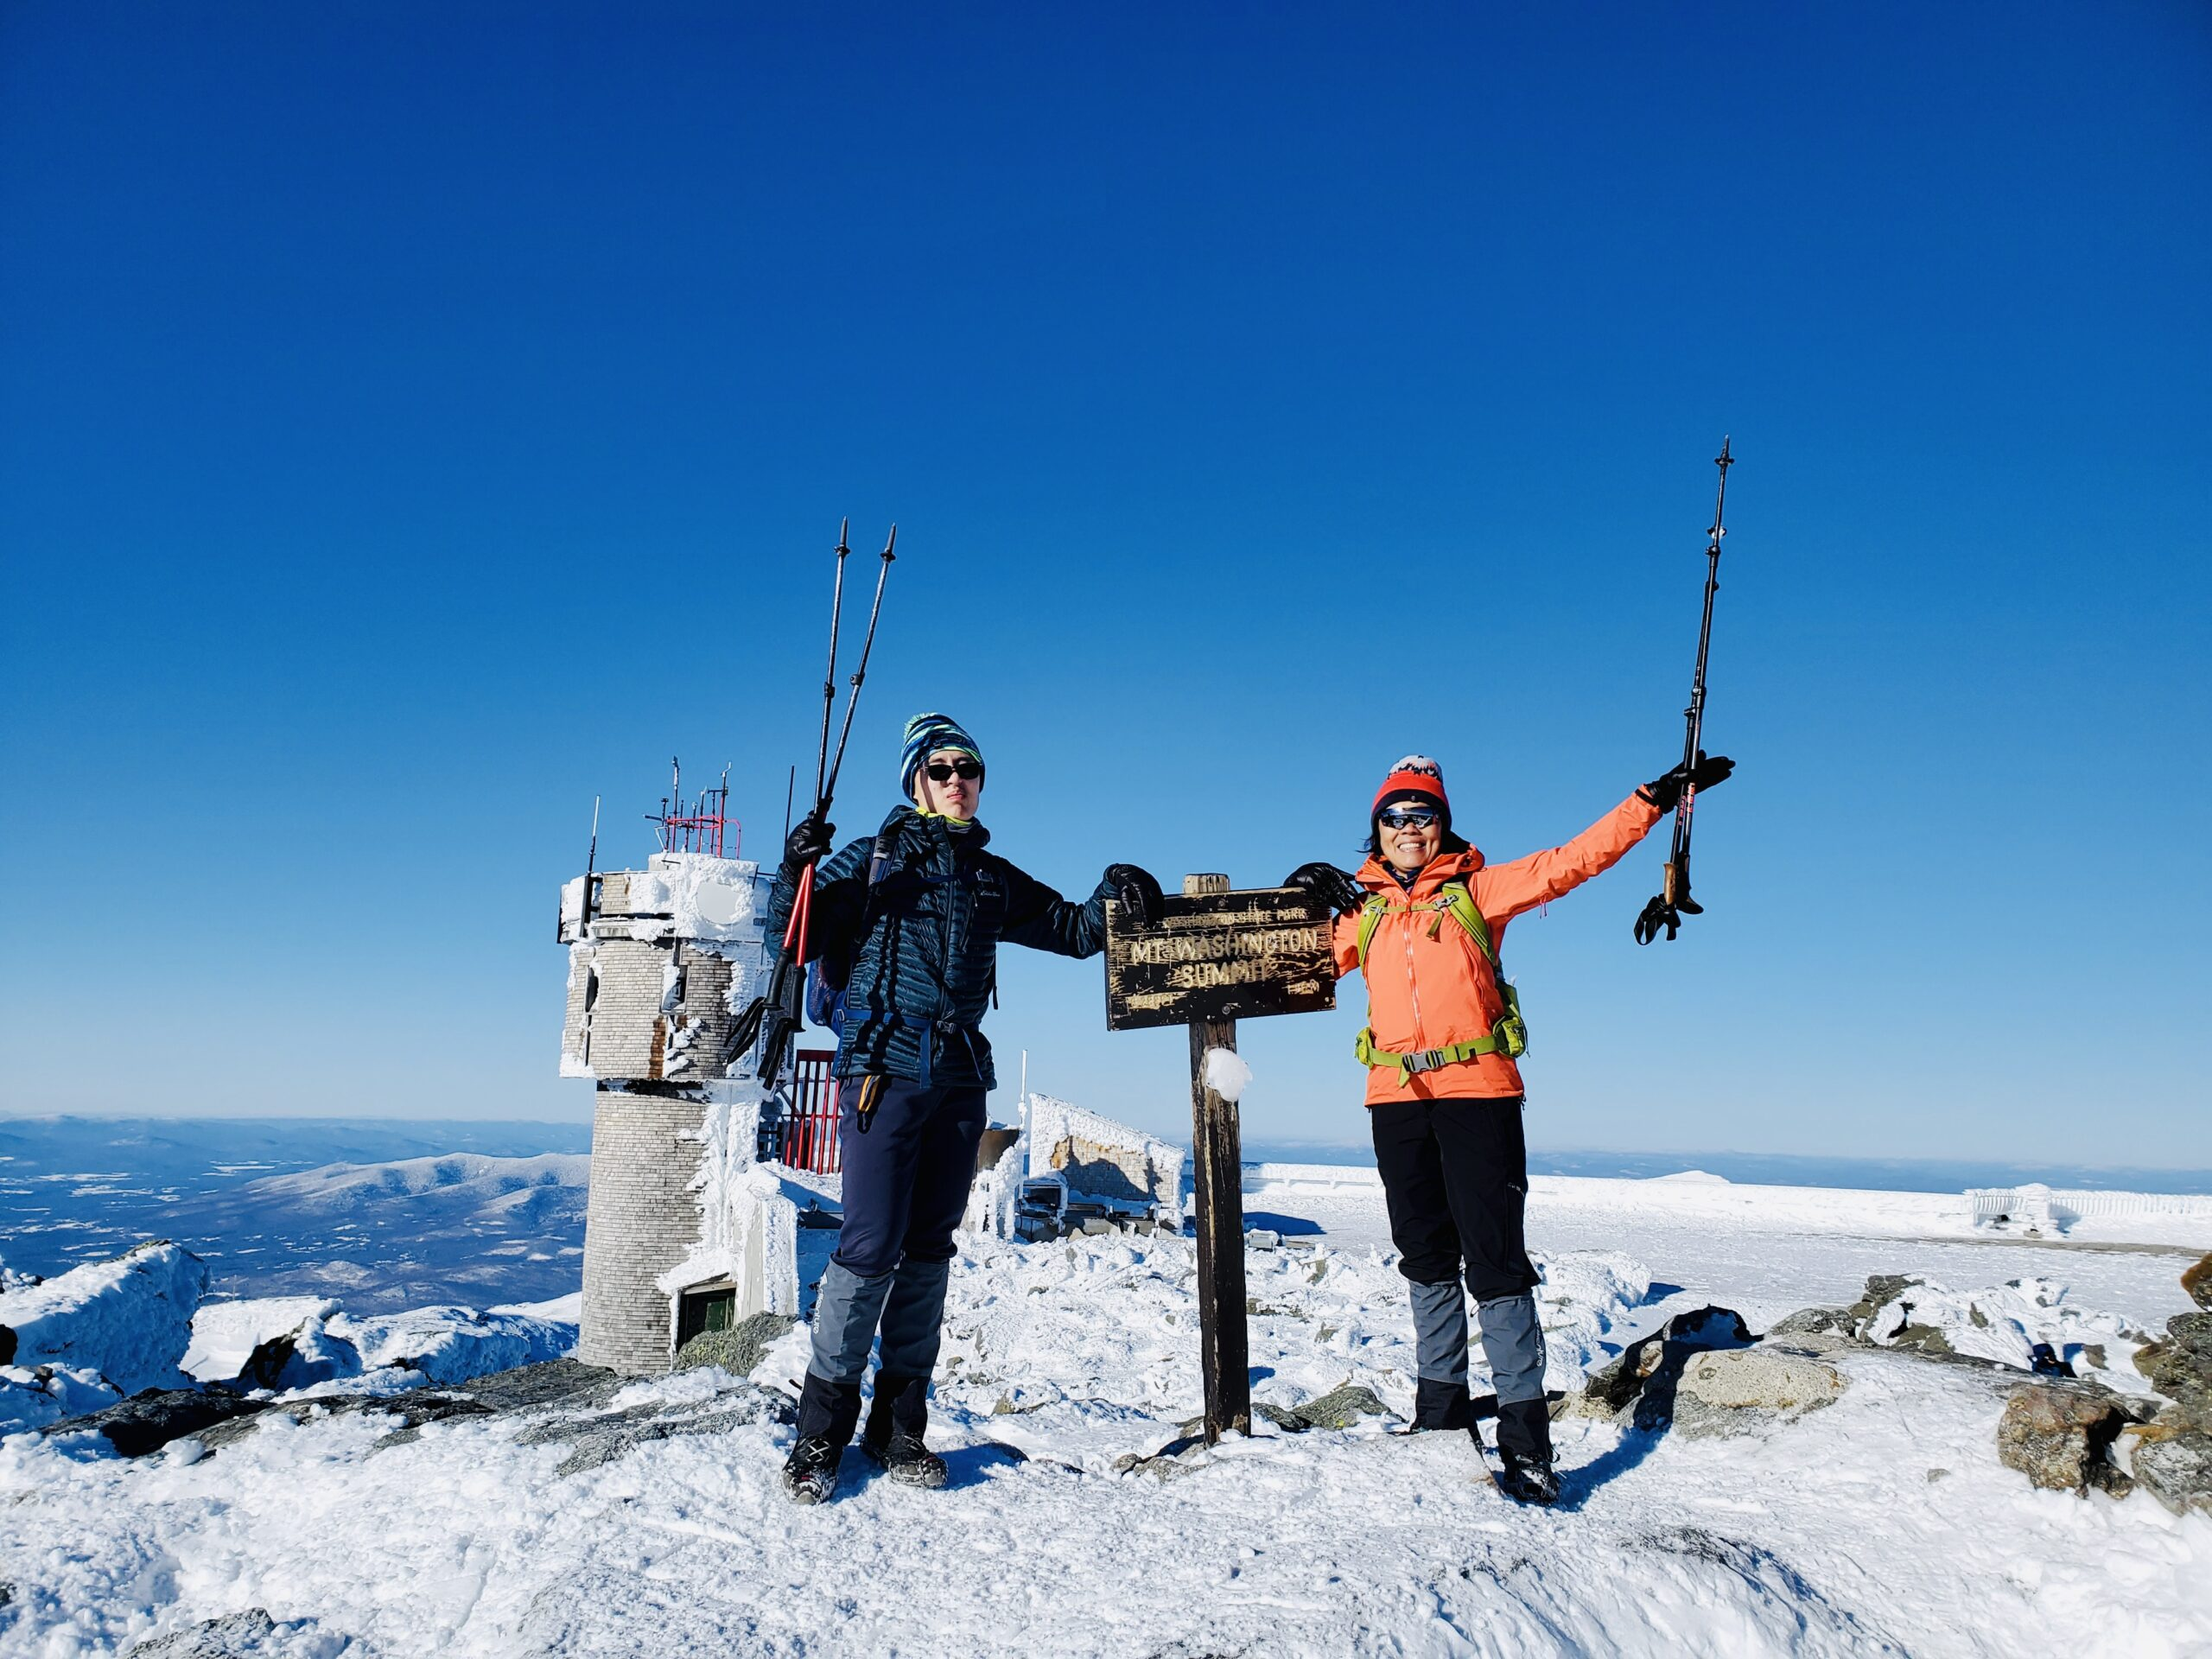 Connie Cao and son Enchee Xu pose at a Mount Washington summit on January 21, 2021.